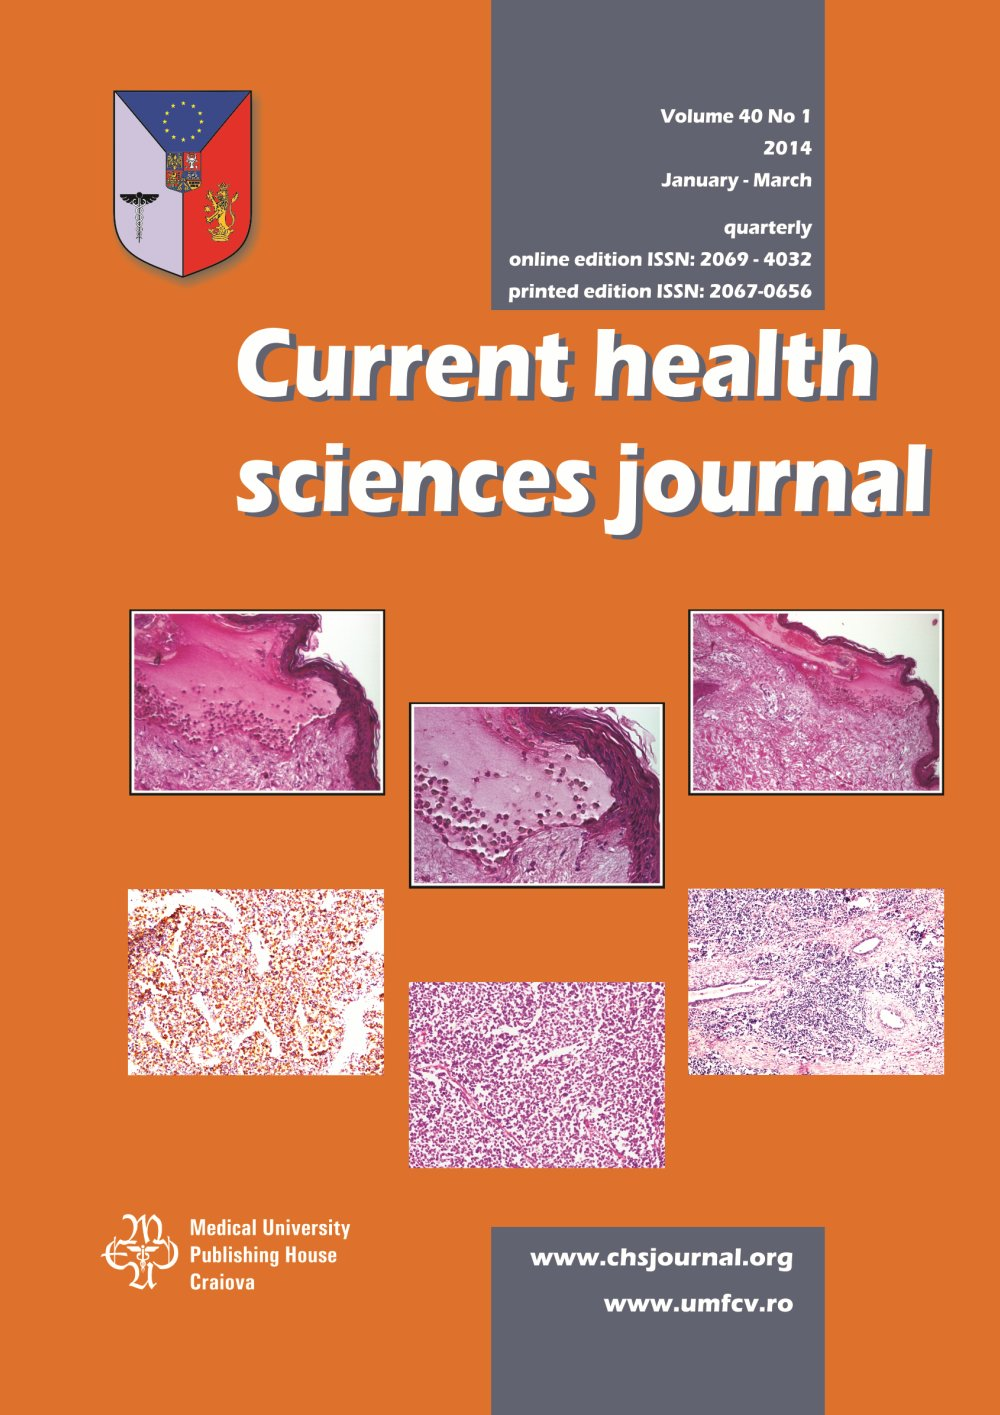 Current Health Sciences Journal, vol. 40 no. 1, 2014